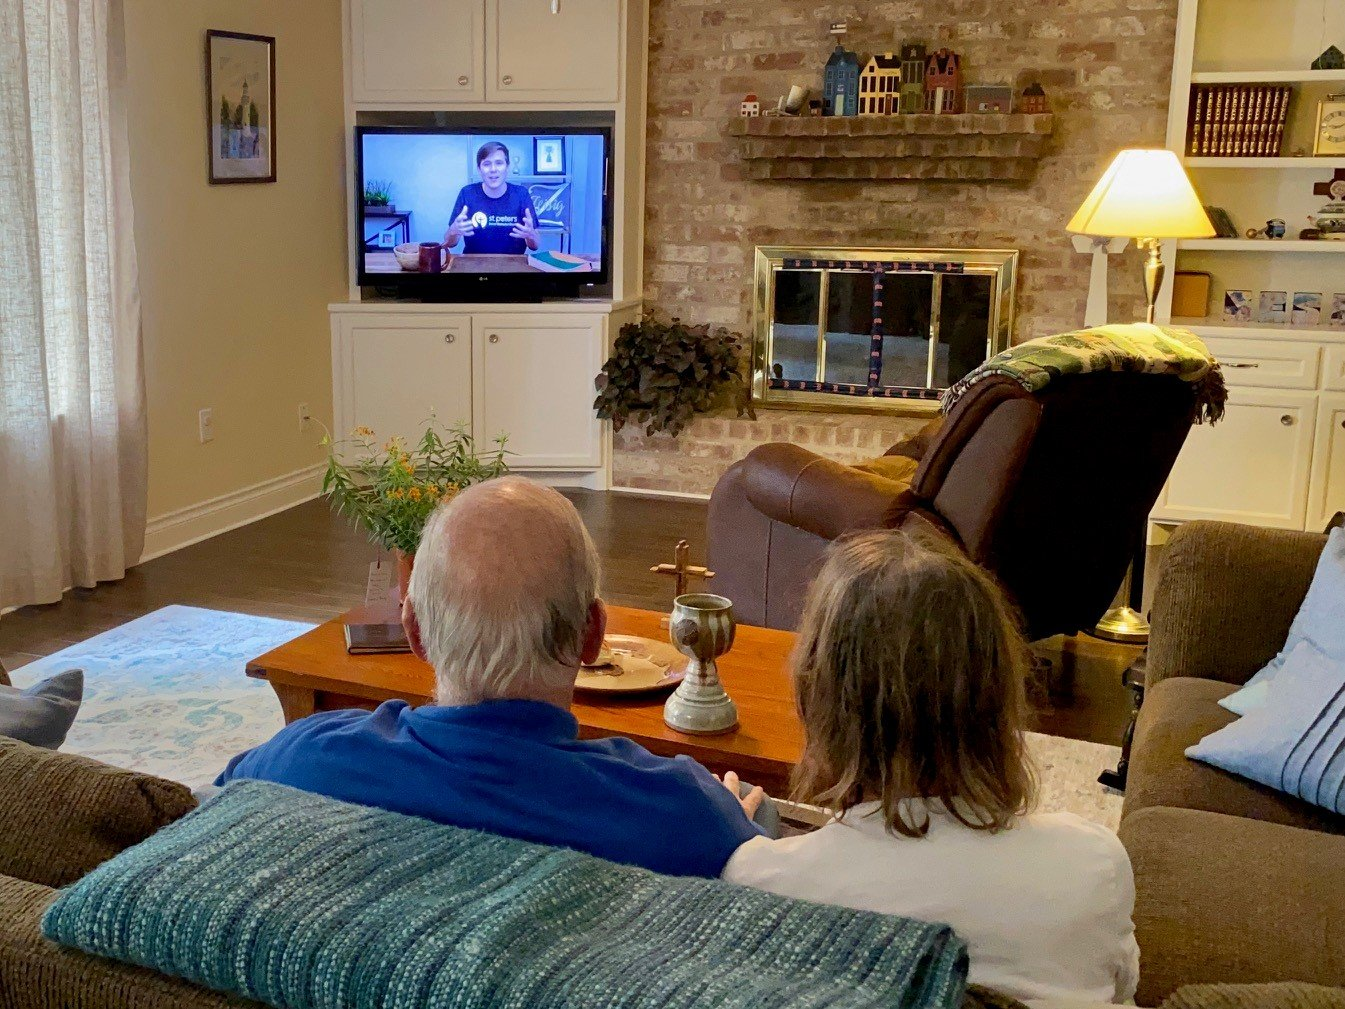 Rev .Bob Johnson and his wife, Susan Johnson watching the St. Peter's United Methodist Church's West Campus live-stream services.